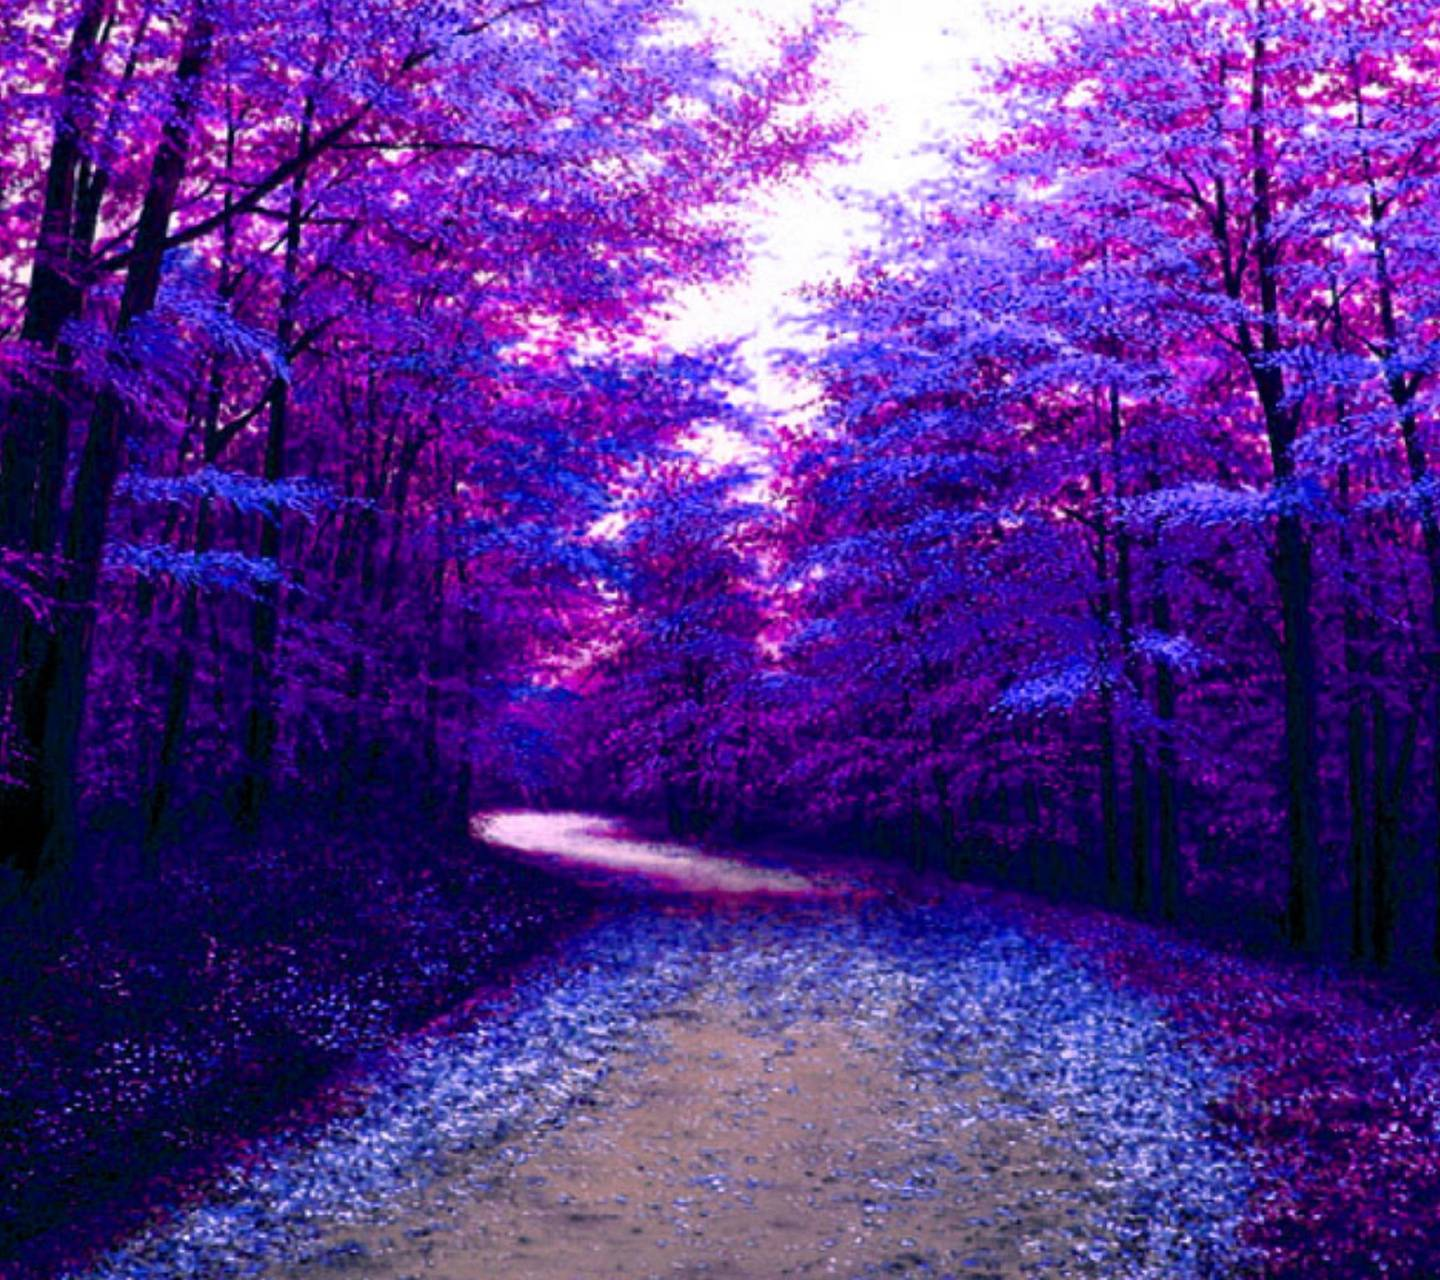 Purple Forest Wallpaper By Konig 32 Free On Zedge